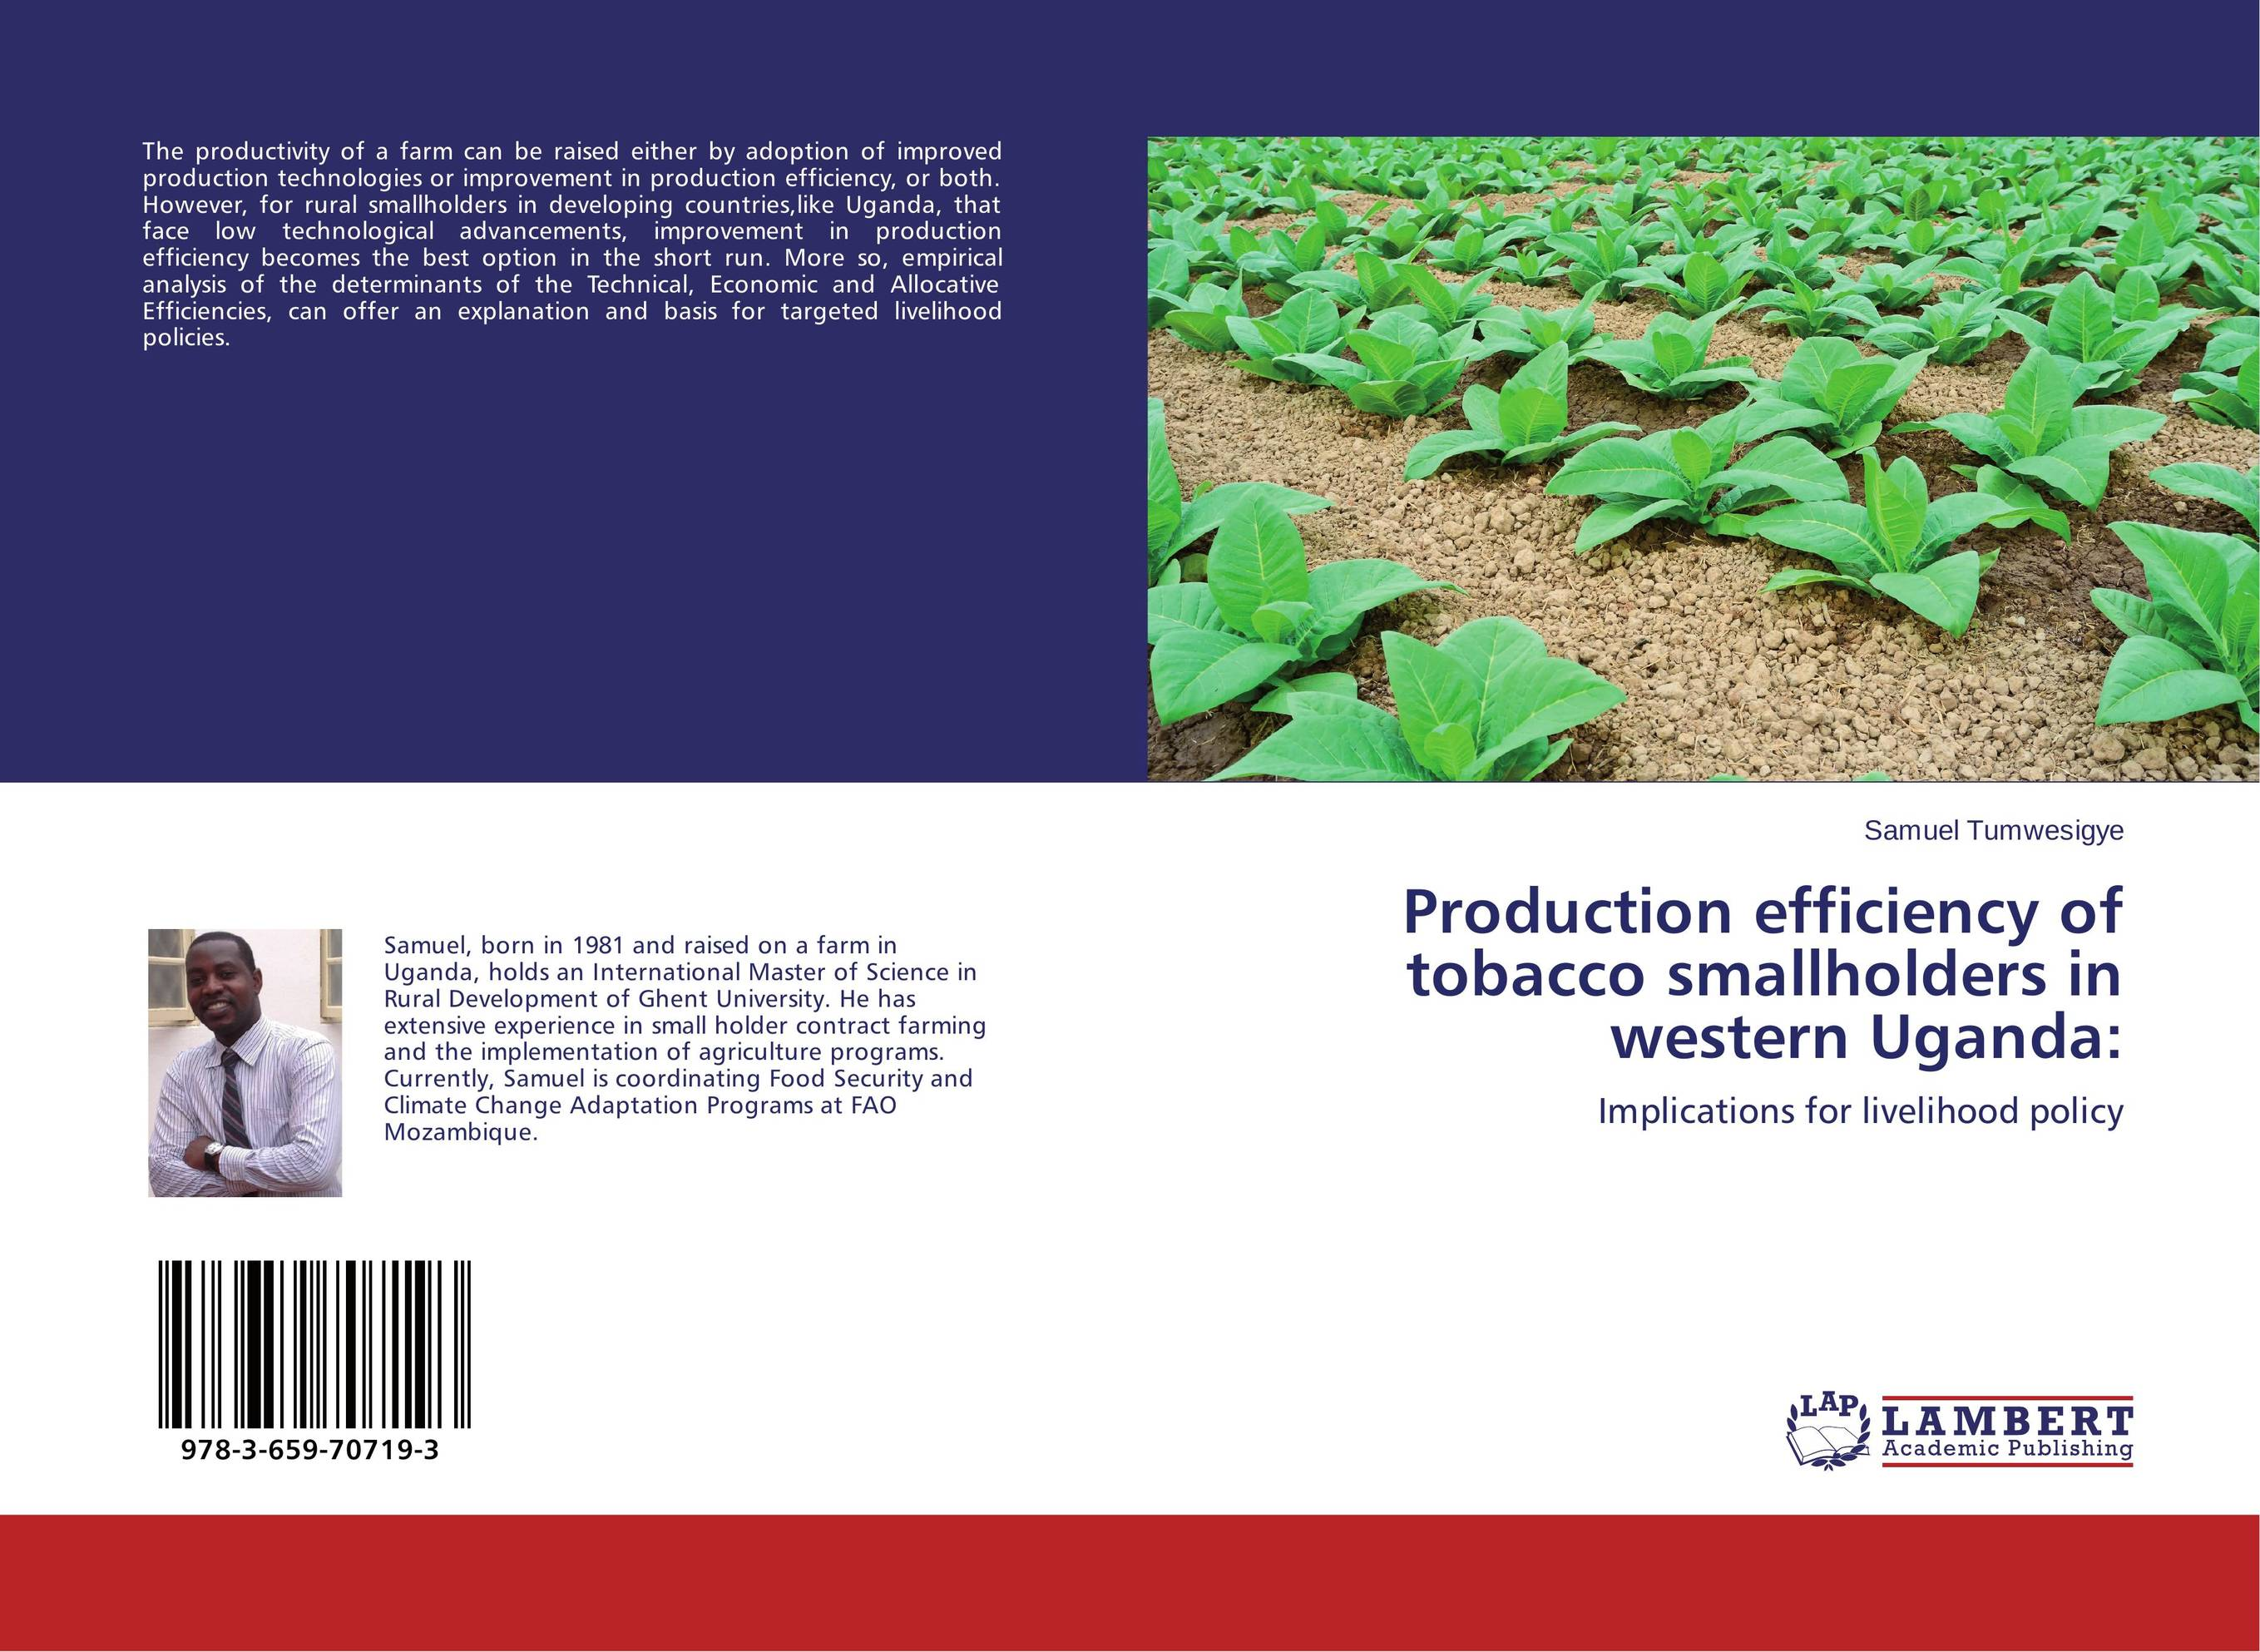 Production efficiency of tobacco smallholders in western Uganda: lipid production by oleaginous yeasts